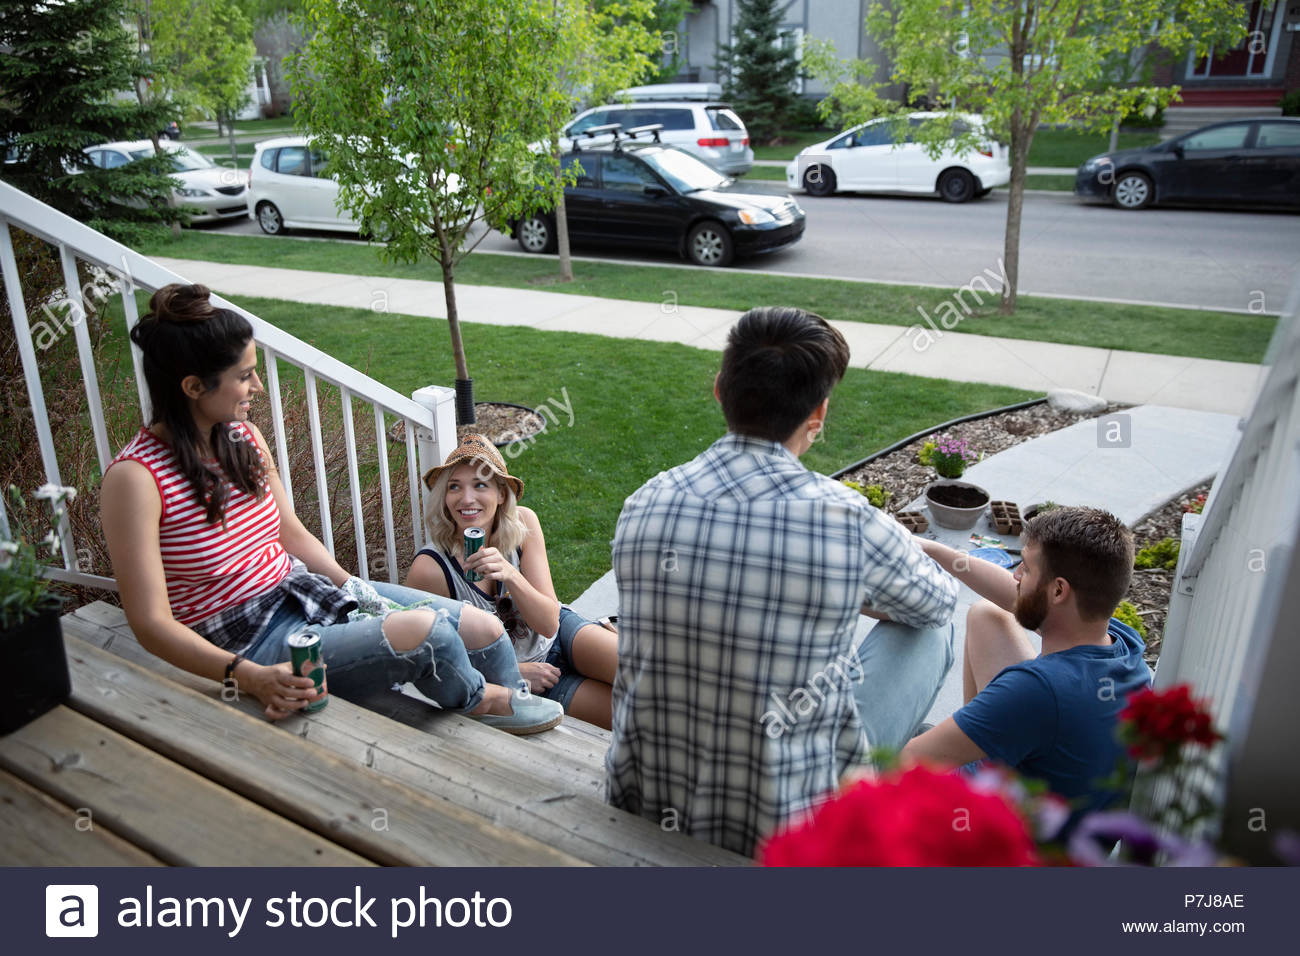 Couples taking a break from gardening, relaxing on front stoop - Stock Image